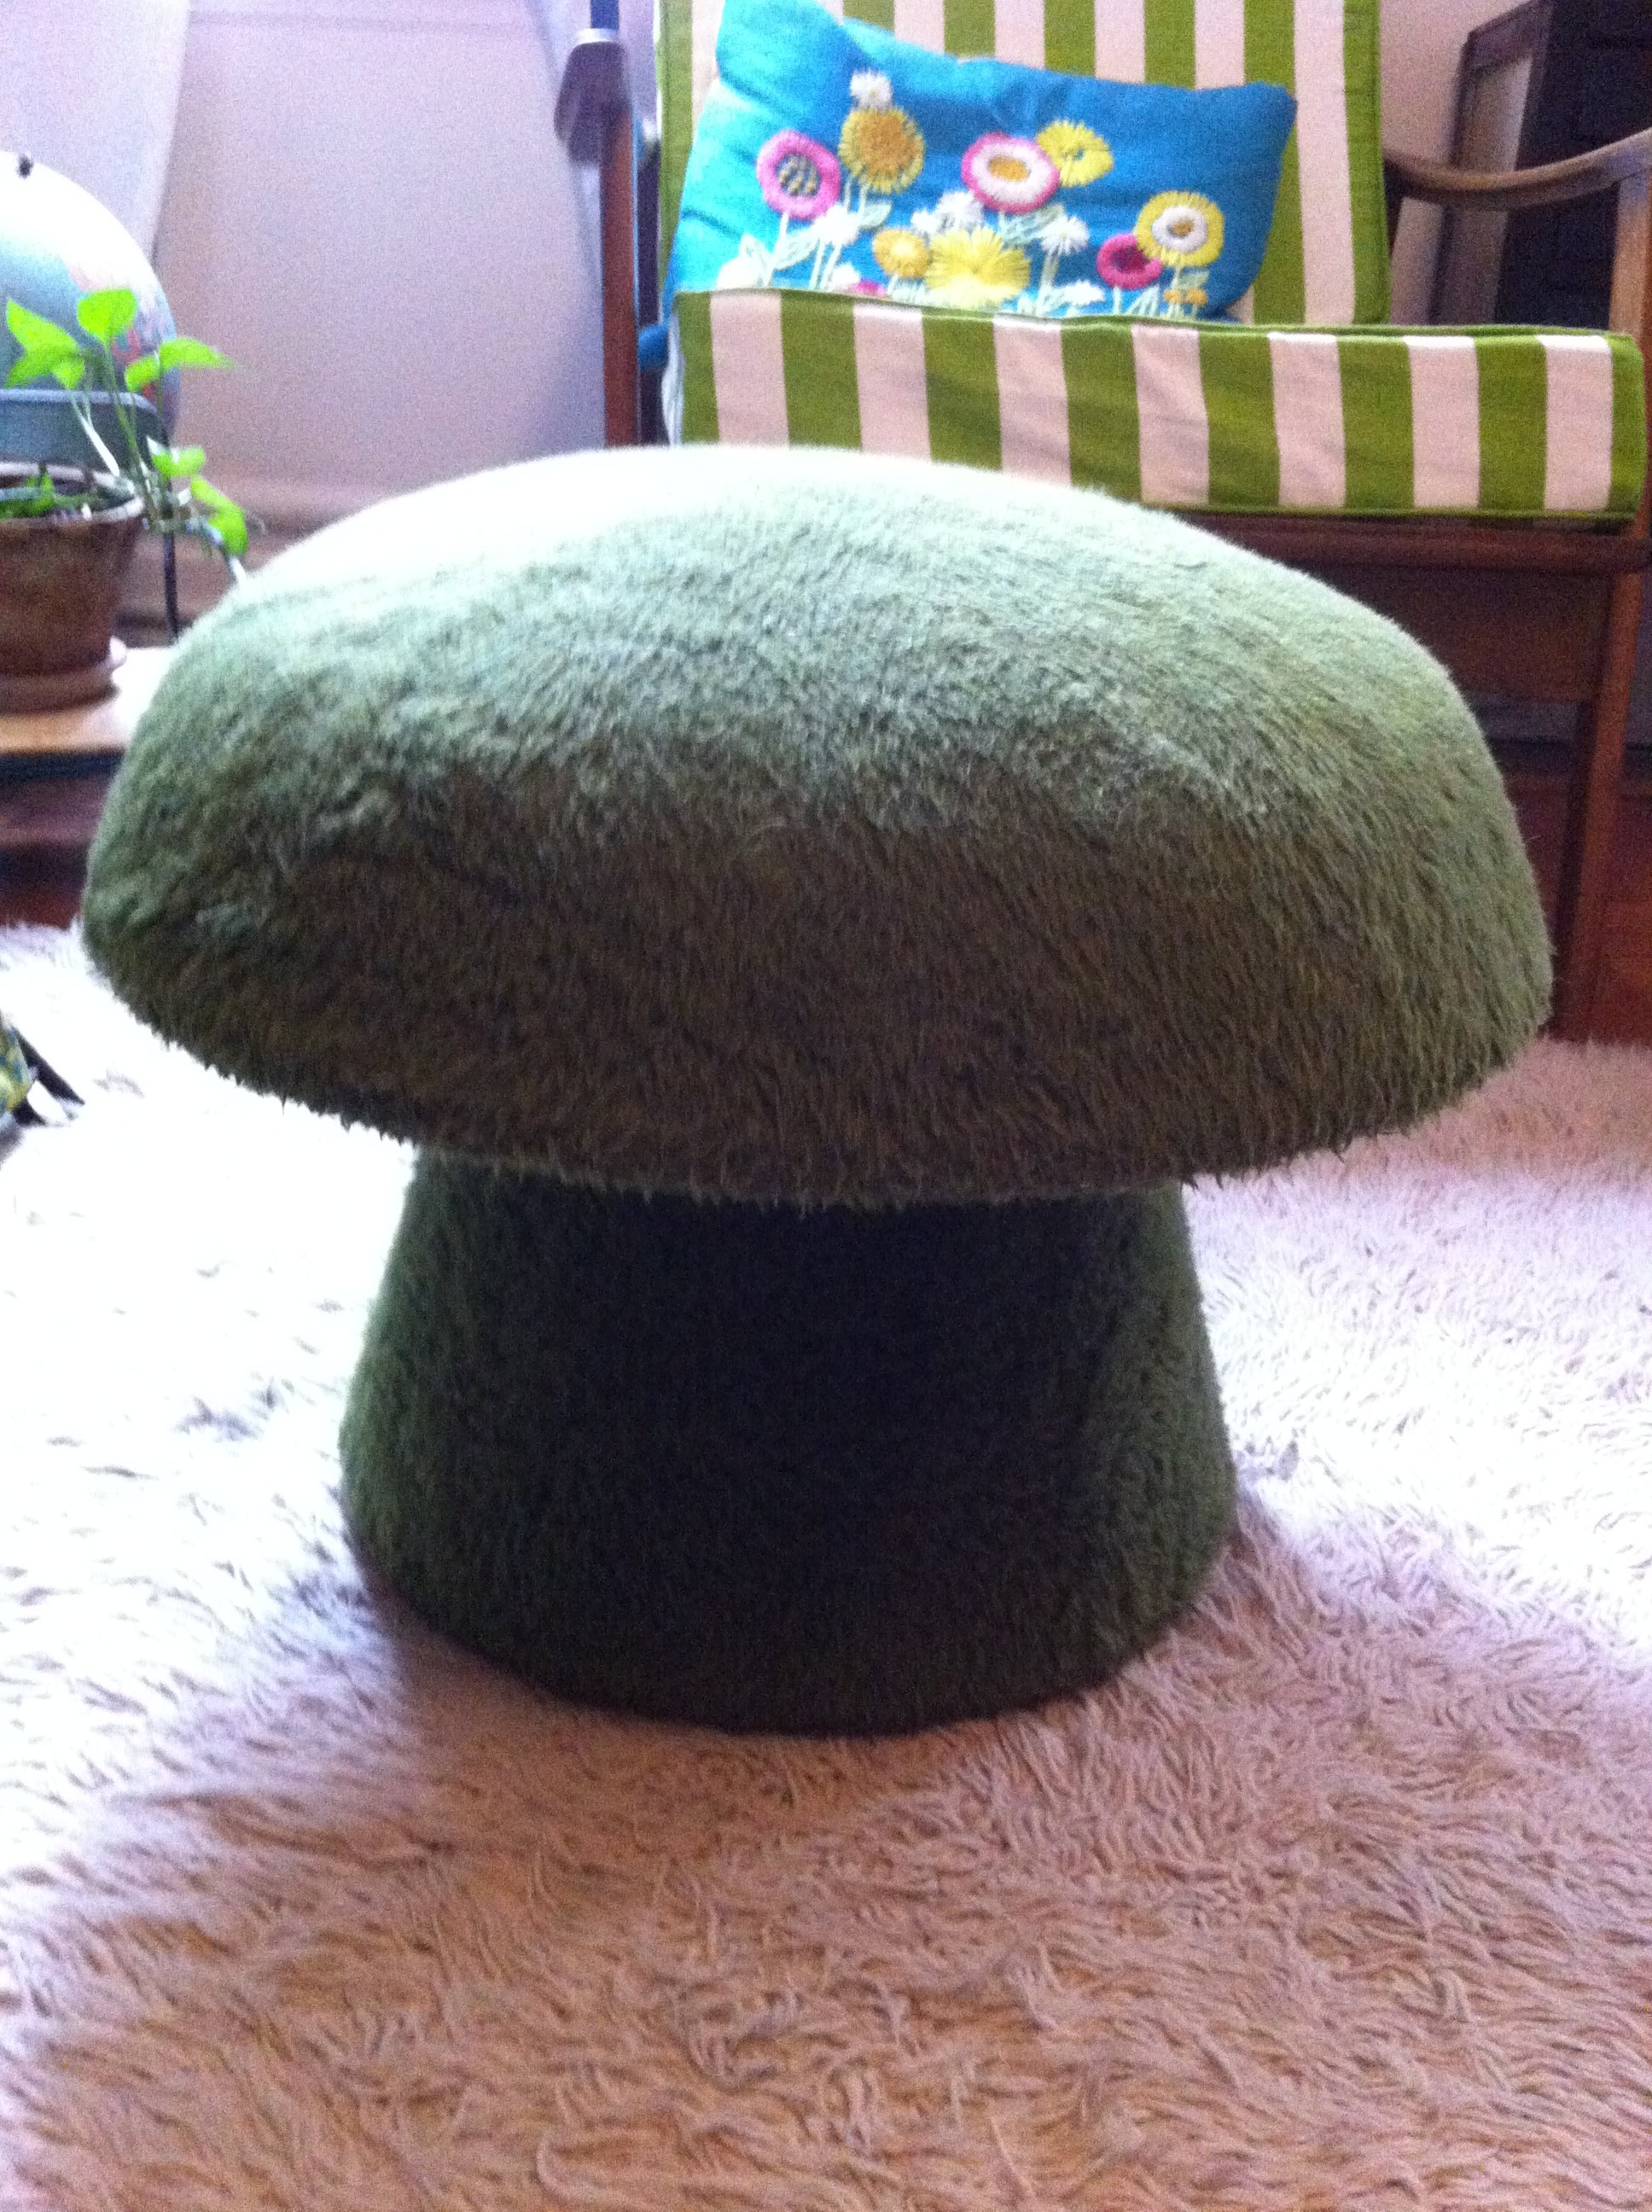 A close up pic of 1 of 2 mushroom ottomans